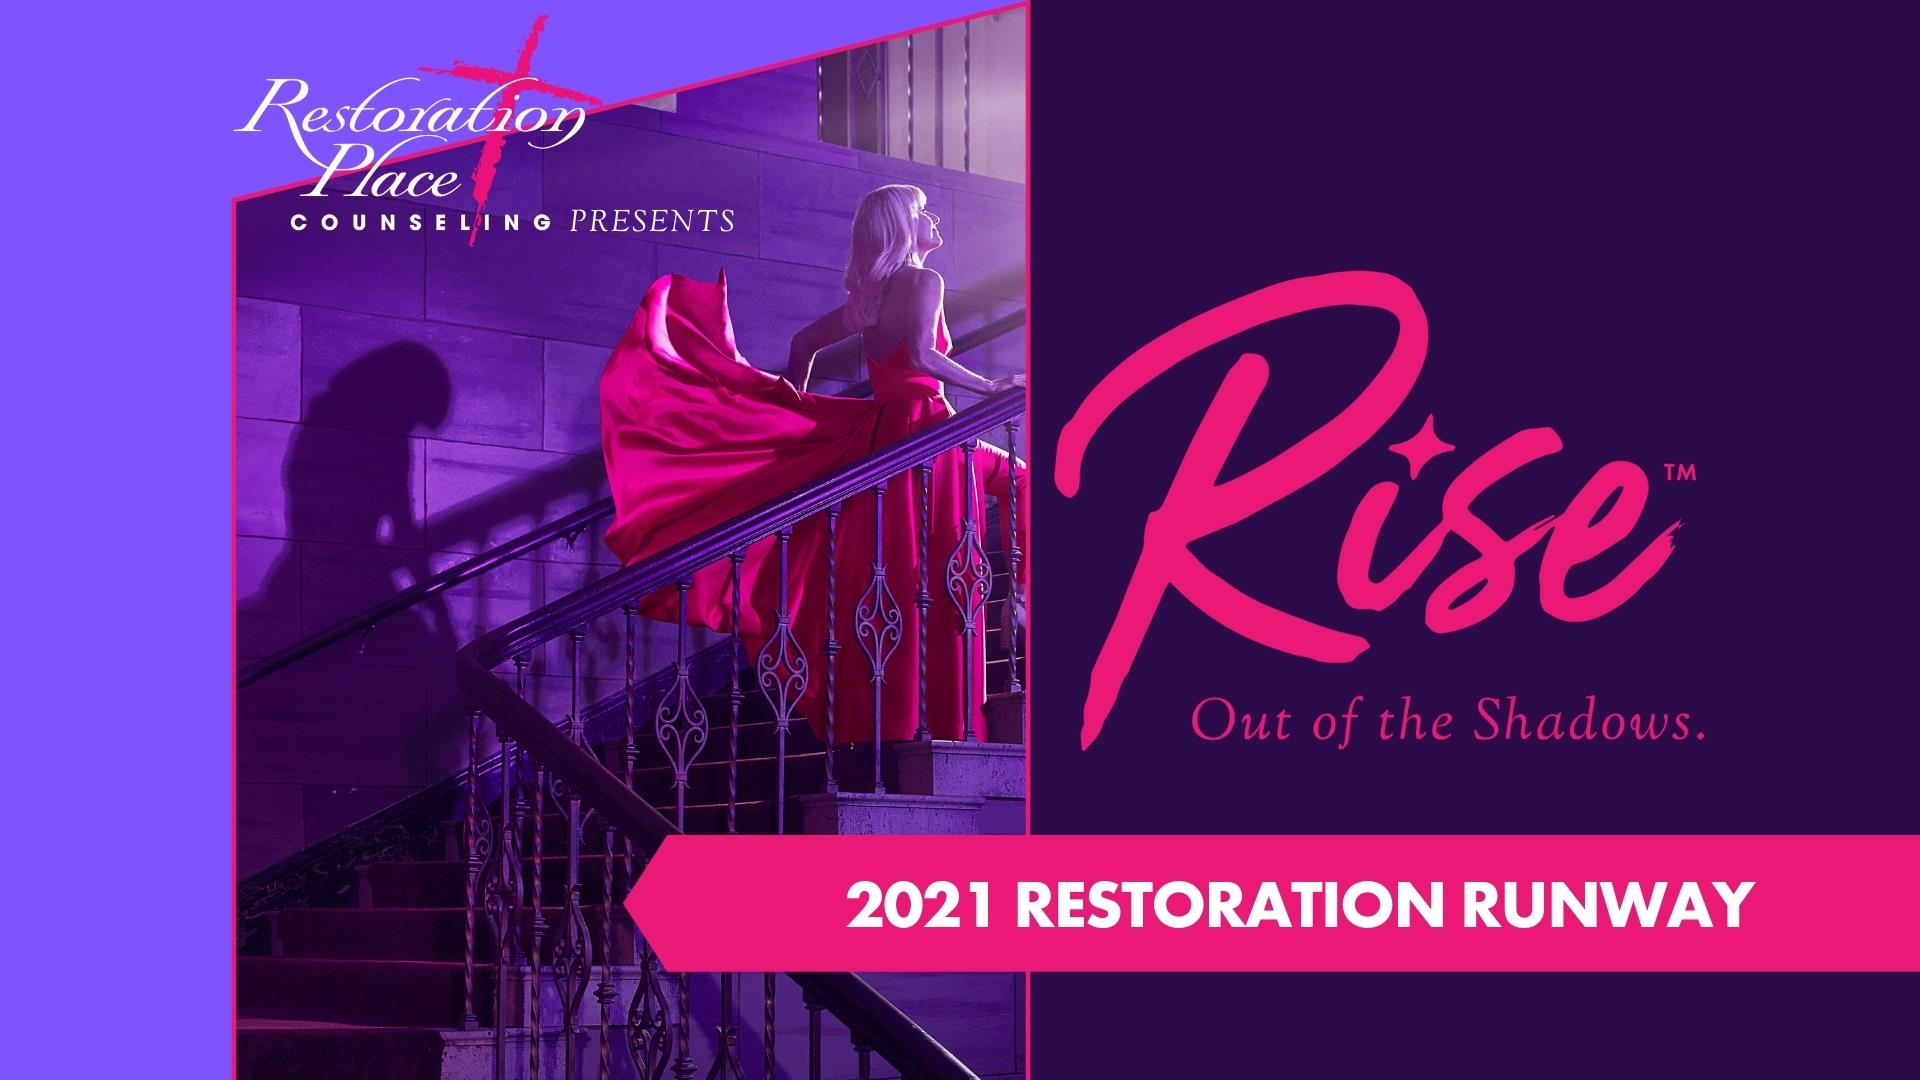 2021 Restoration Runway: RISE Out of the Shadows